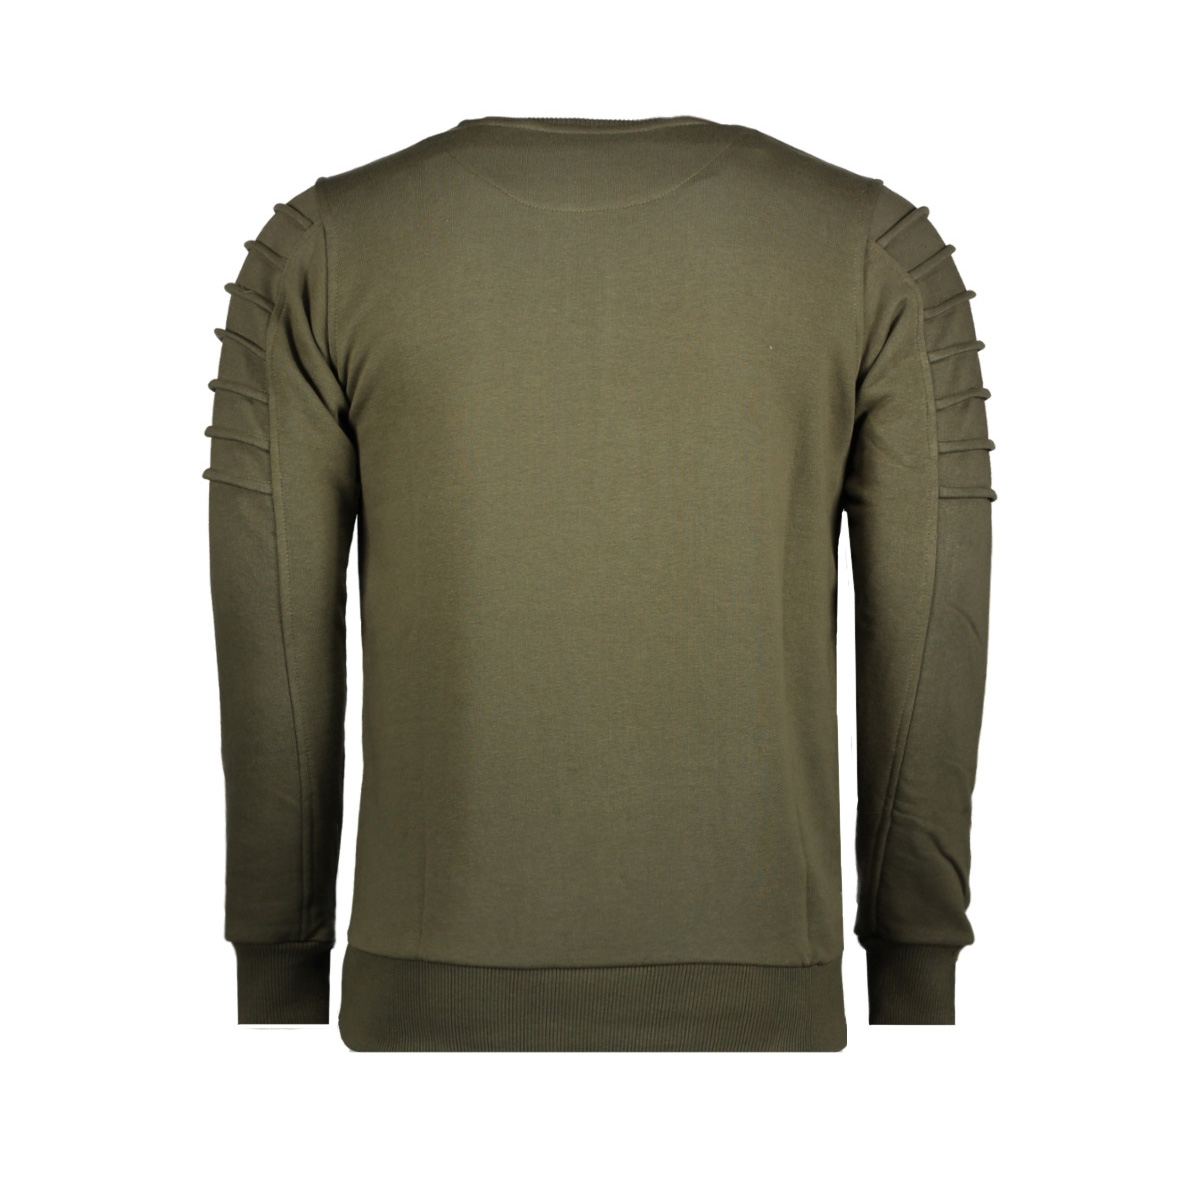 76116 gabbiano sweater army